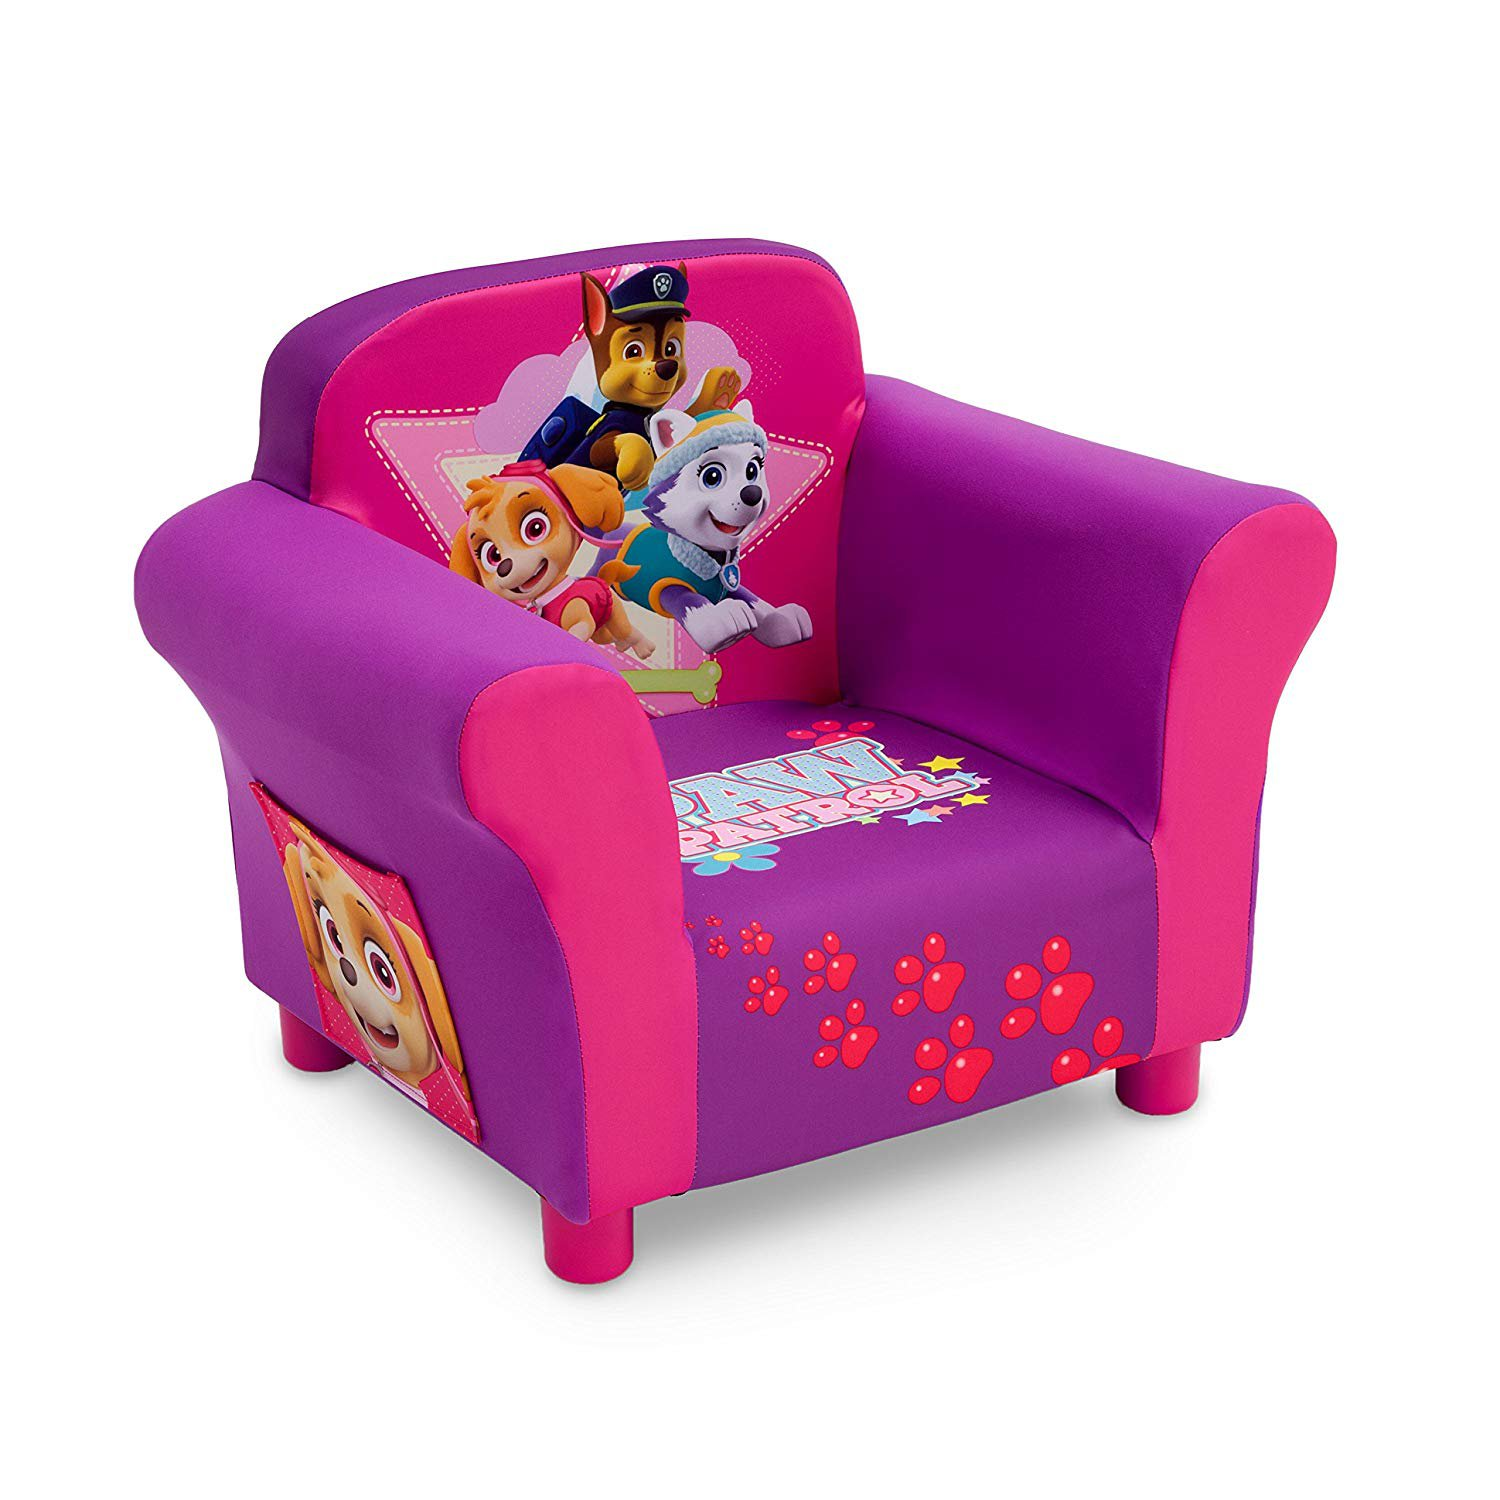 Paw Patrol Childrens Upholstered Chair